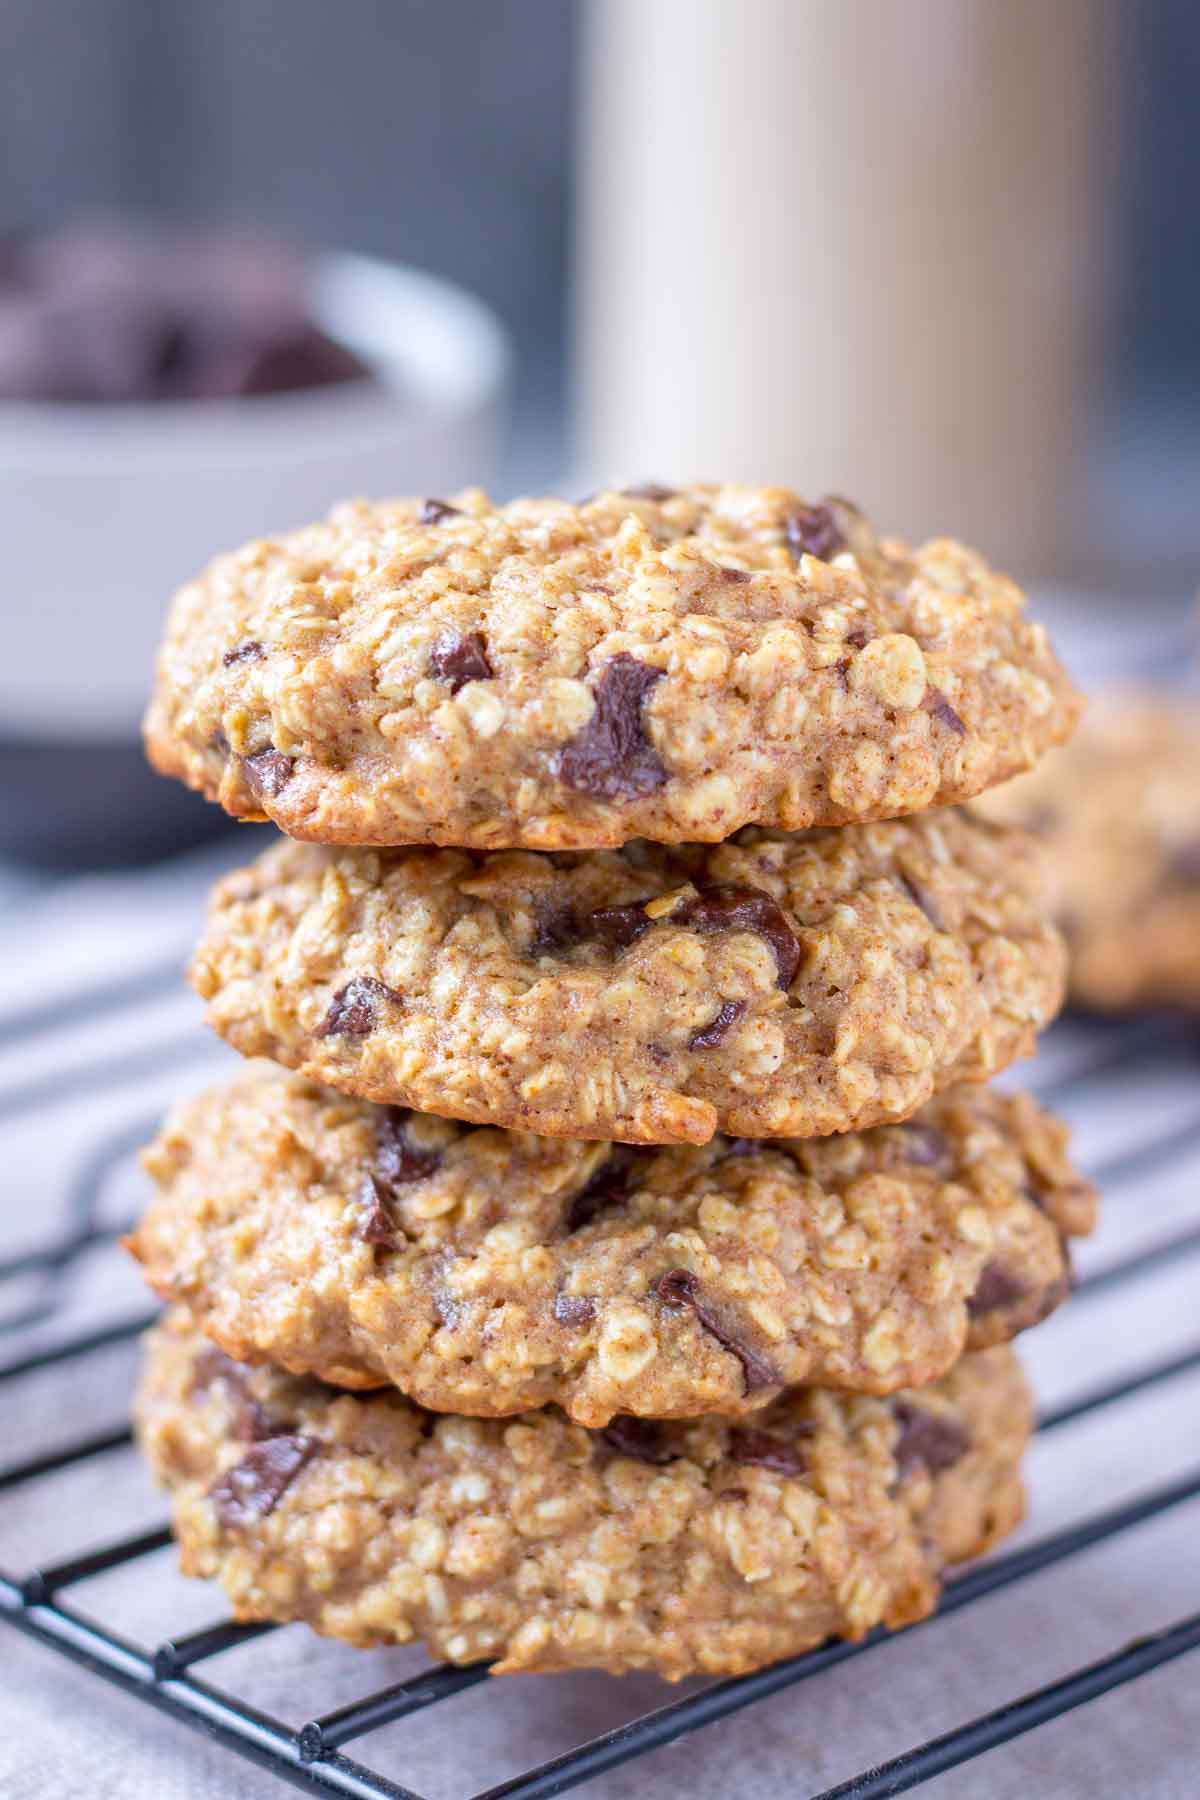 Chocolate Chip Oatmeal Cookies stacked on a cooling tray